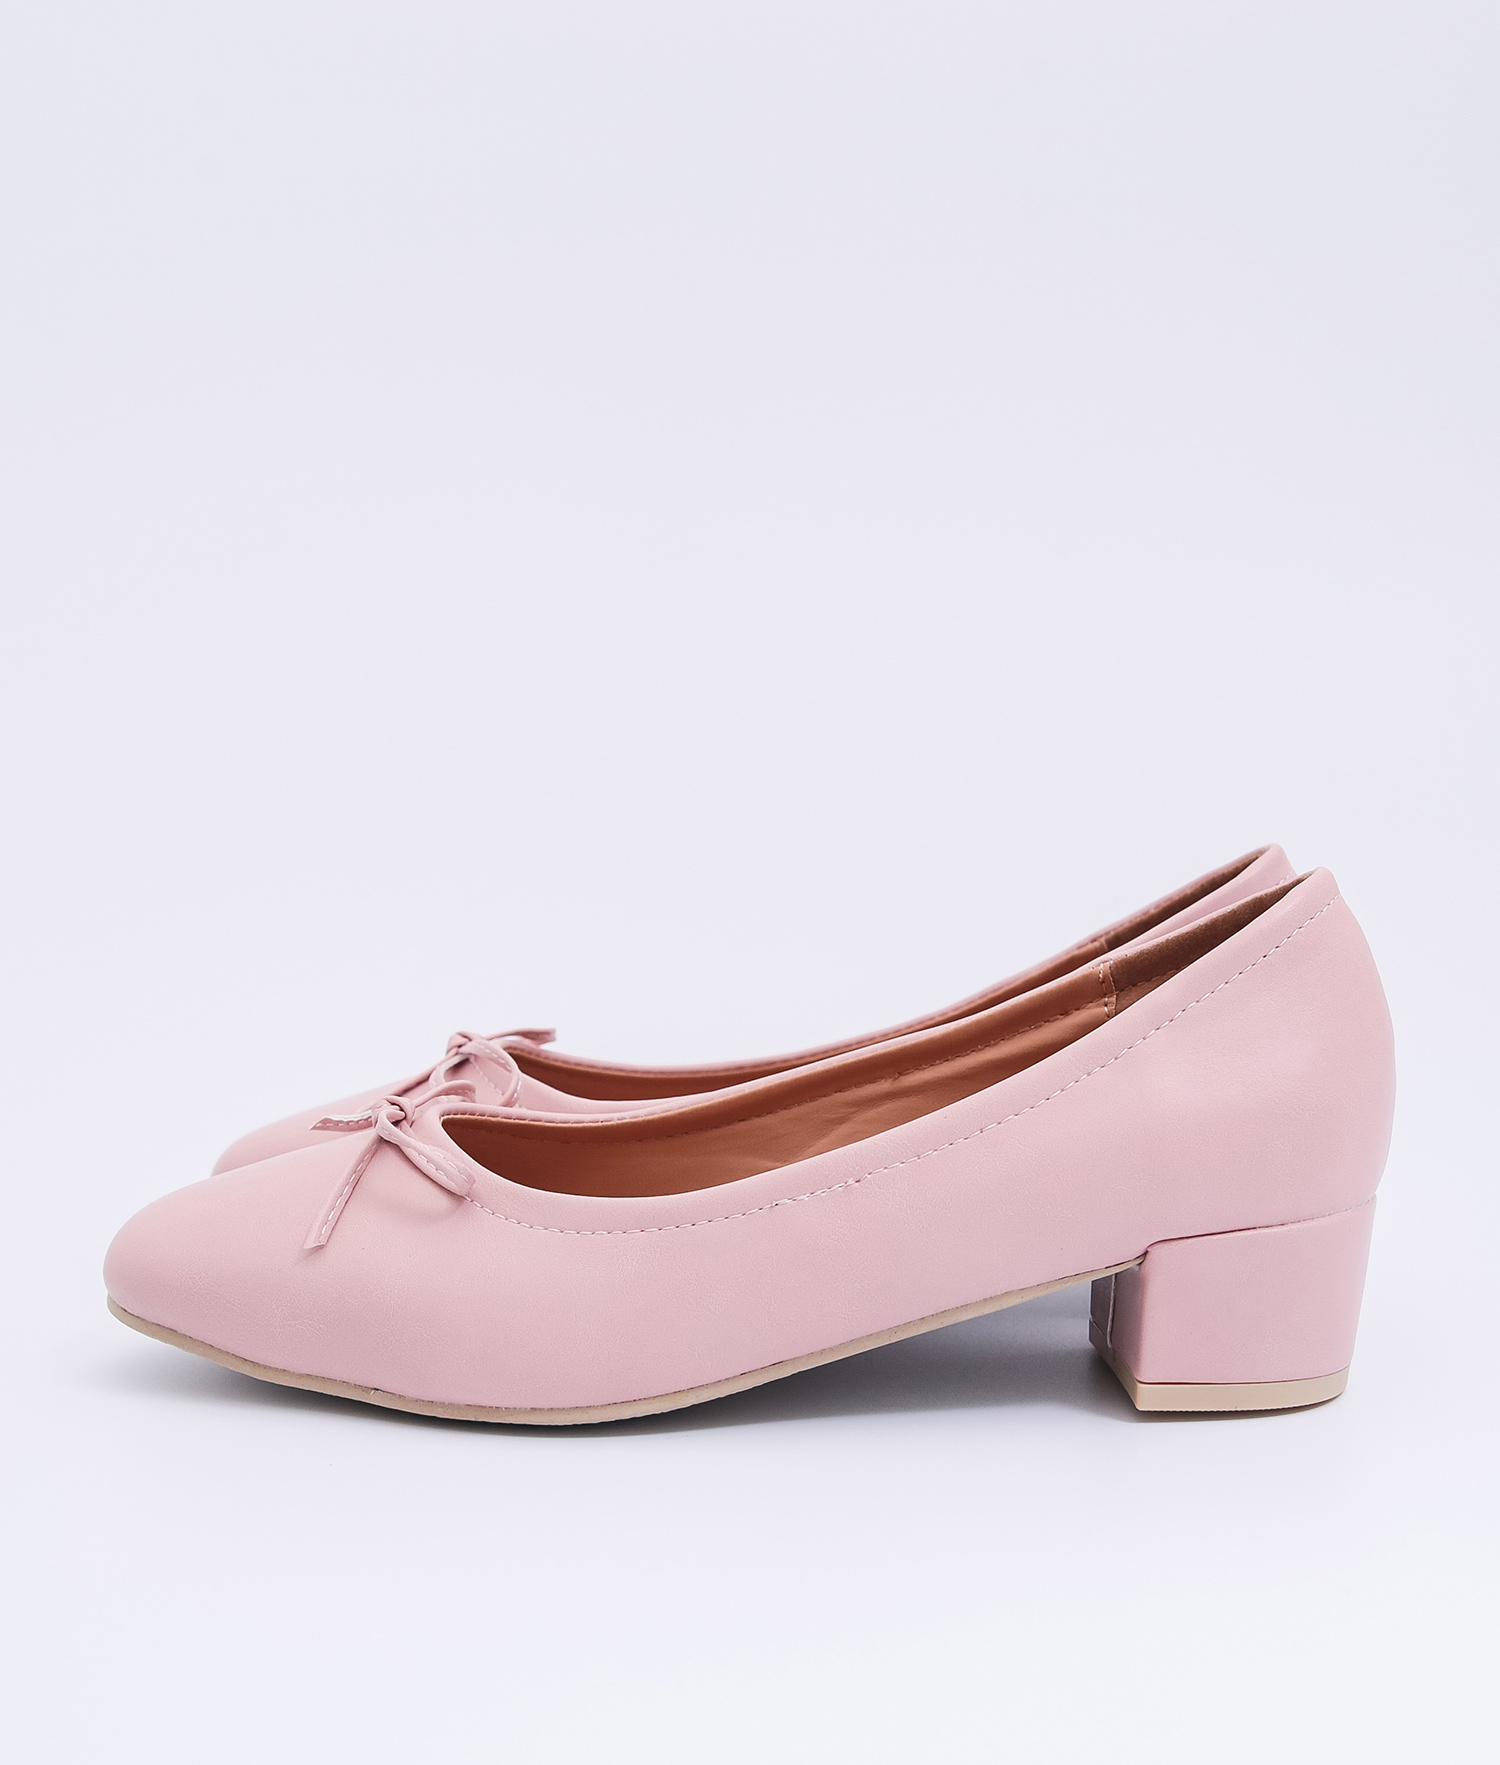 a2c5efe30c3a AnnaKastle Womens Bow Front Low Block Heel Pumps Pink